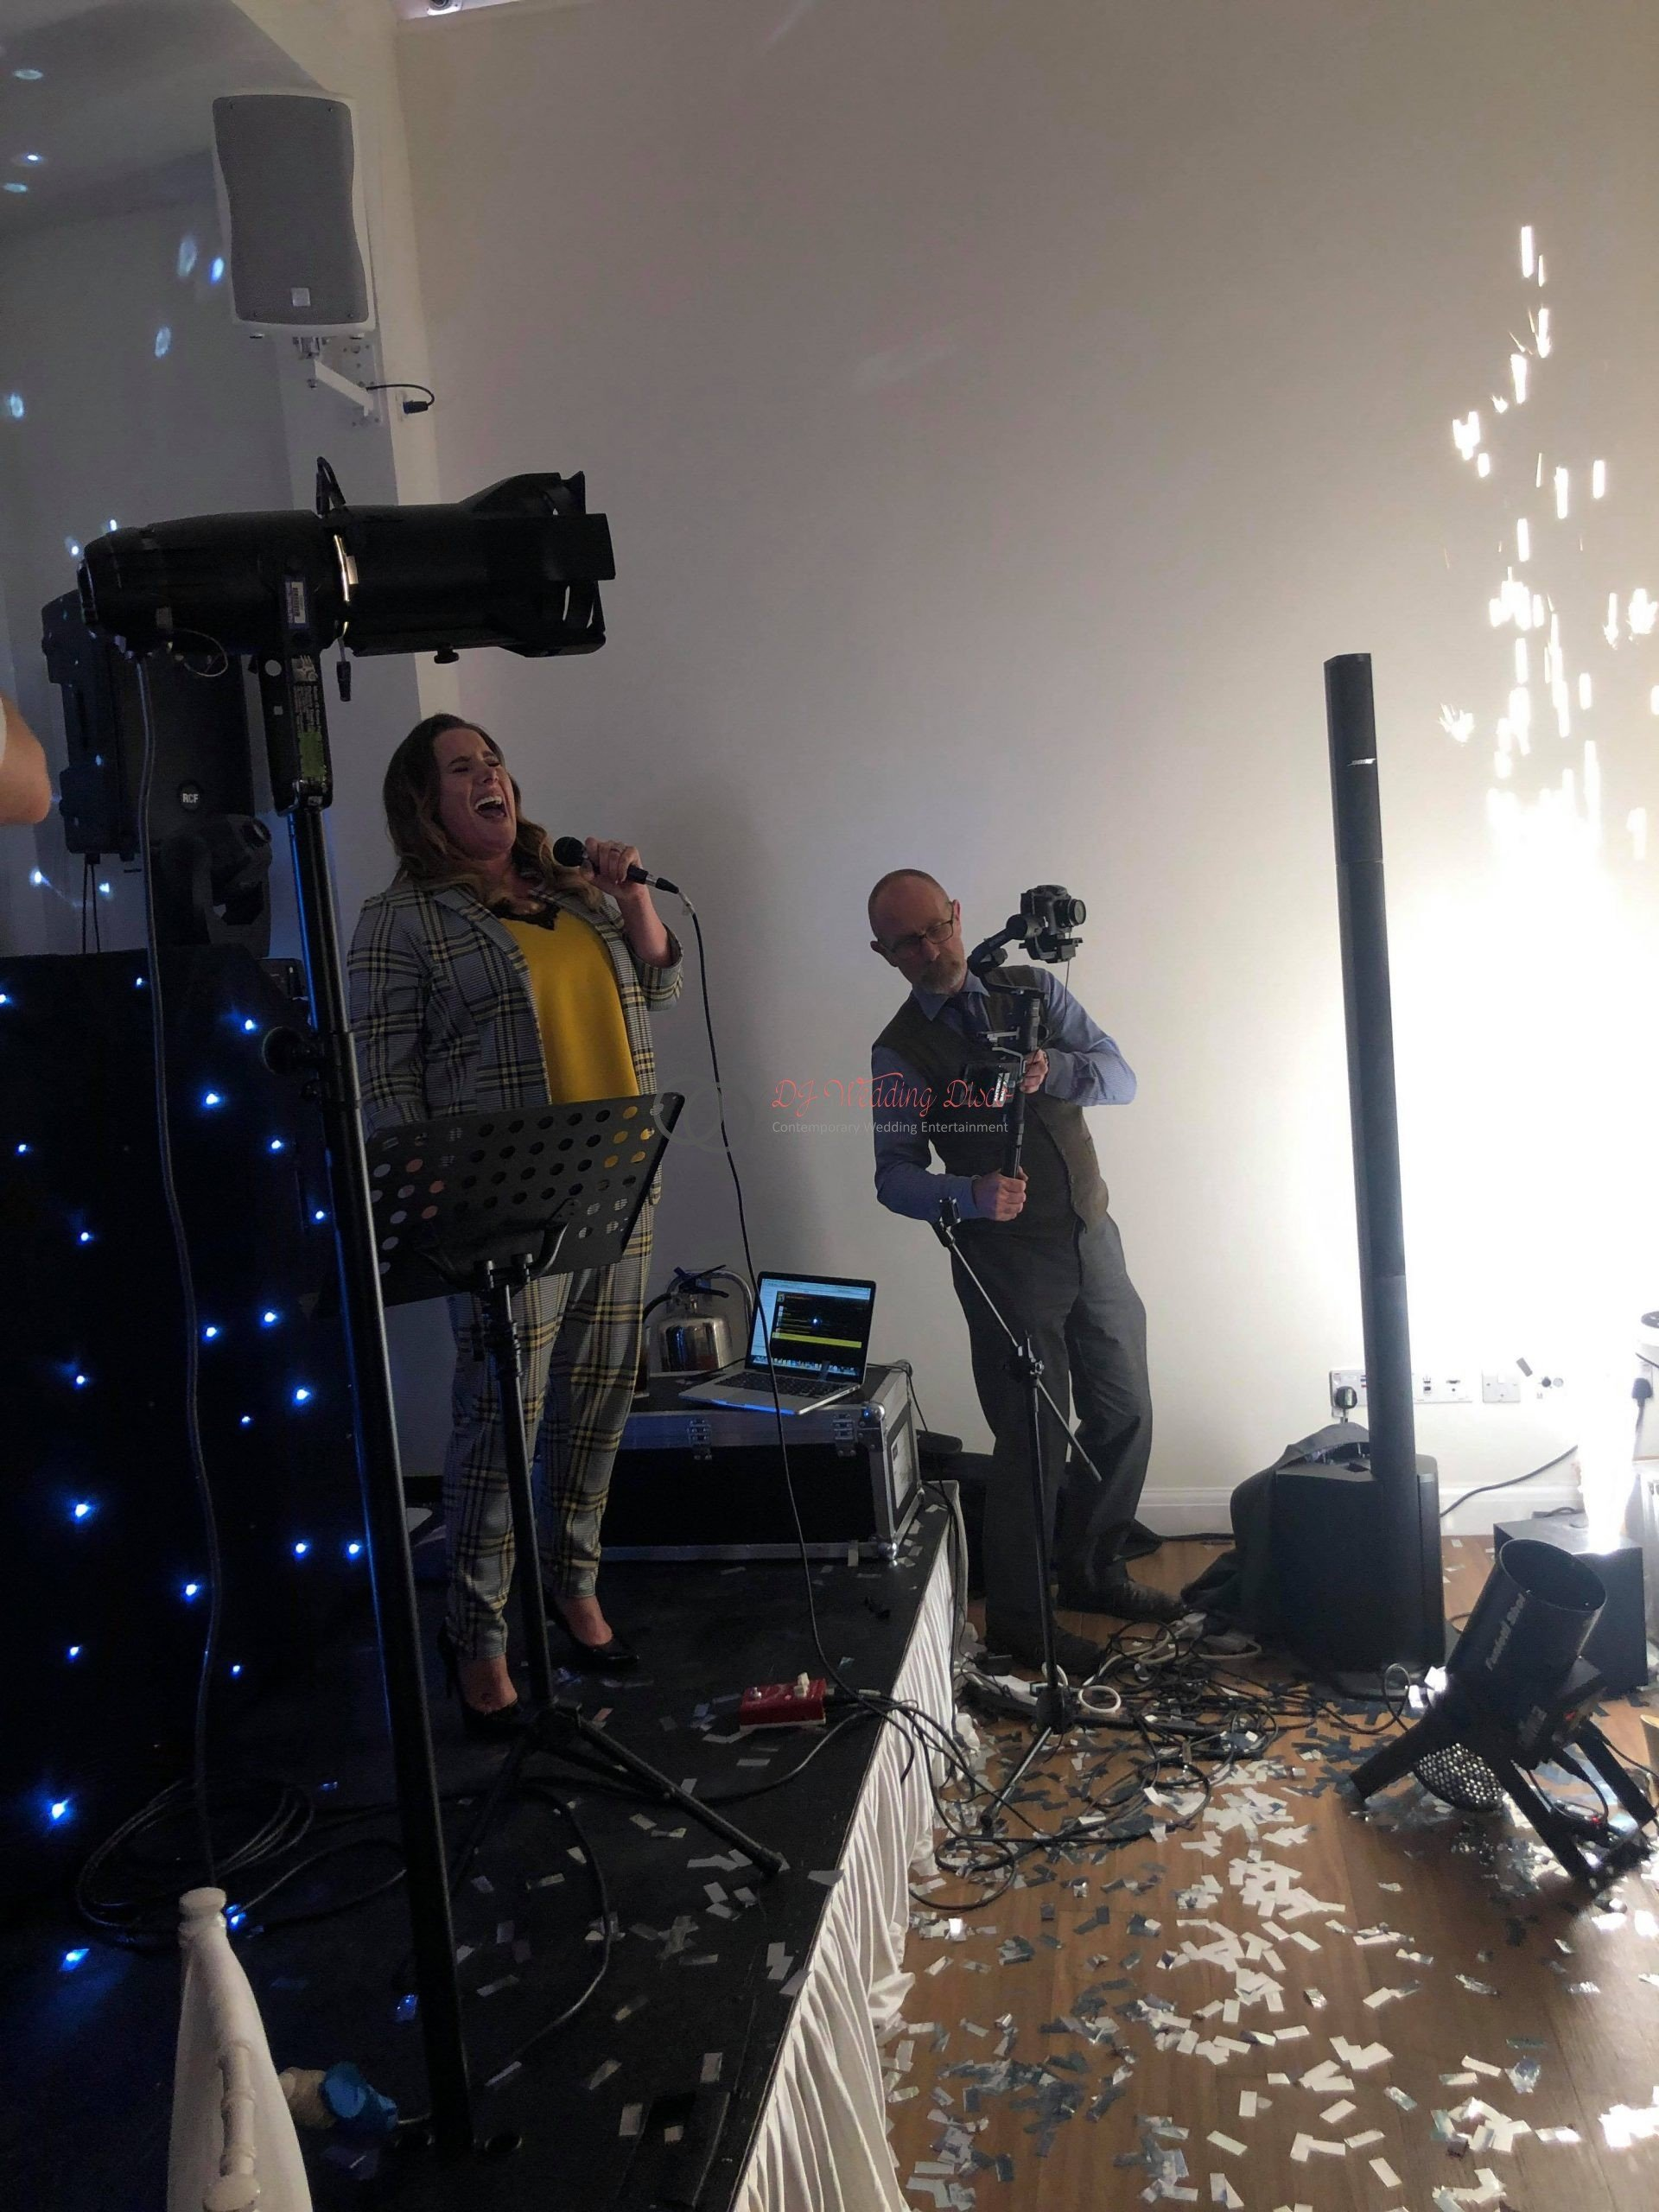 joe-malcolms-wedding-at-the-winstanley-house-DJ-Wedding-Disco-Photo-booth-dance-floor-sparks-dry-ice-confetti-love-letter-hire-3